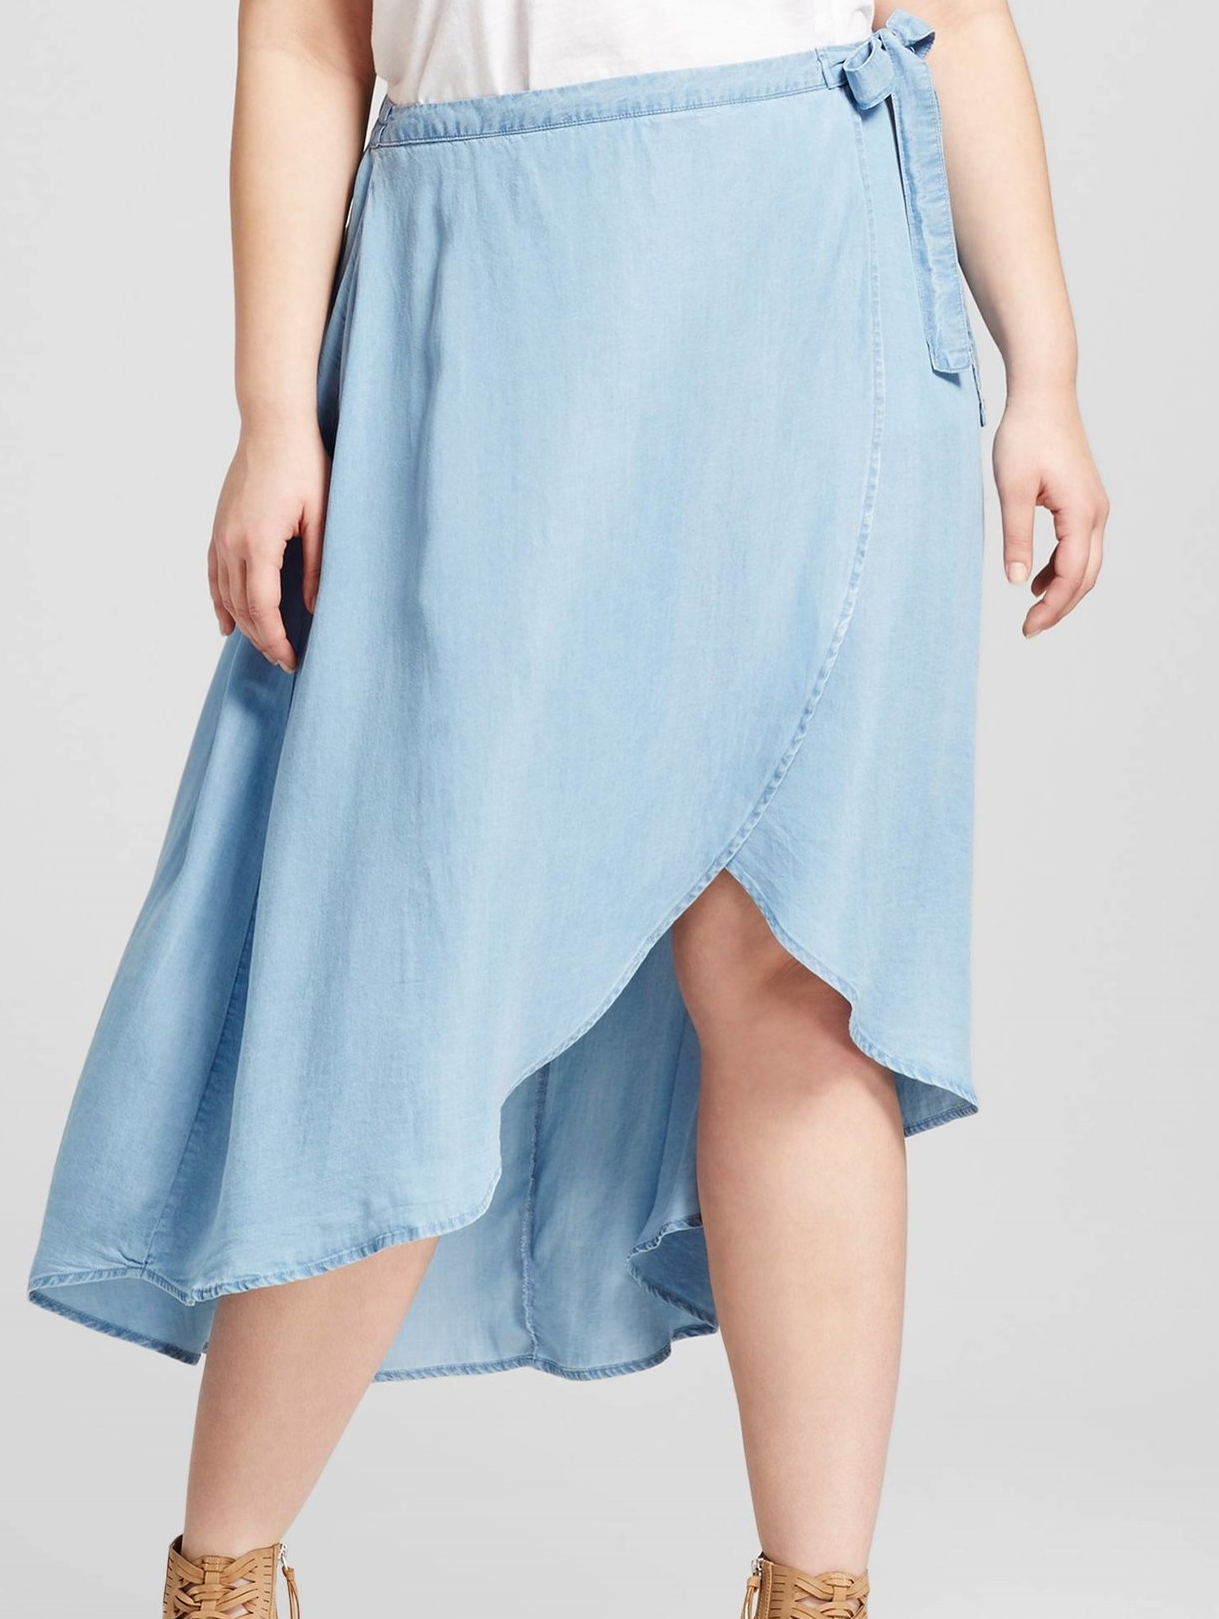 '3Hearts' Chmbray Wrap Skirt in Lyocell - $26.99 Target